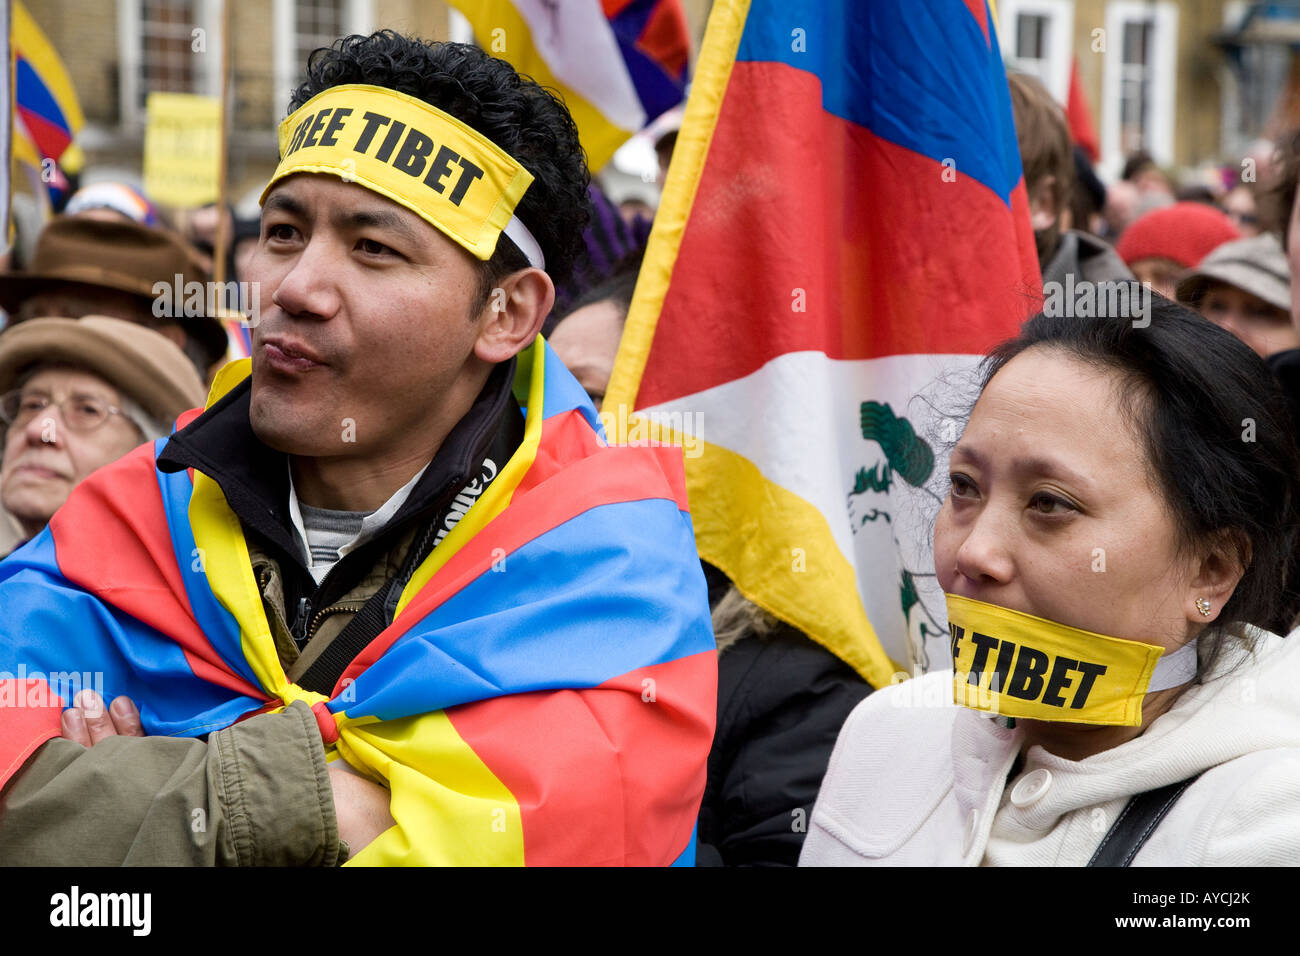 Tibetische Demonstranten auf der Free Tibet Demo London UK Europe Stockbild